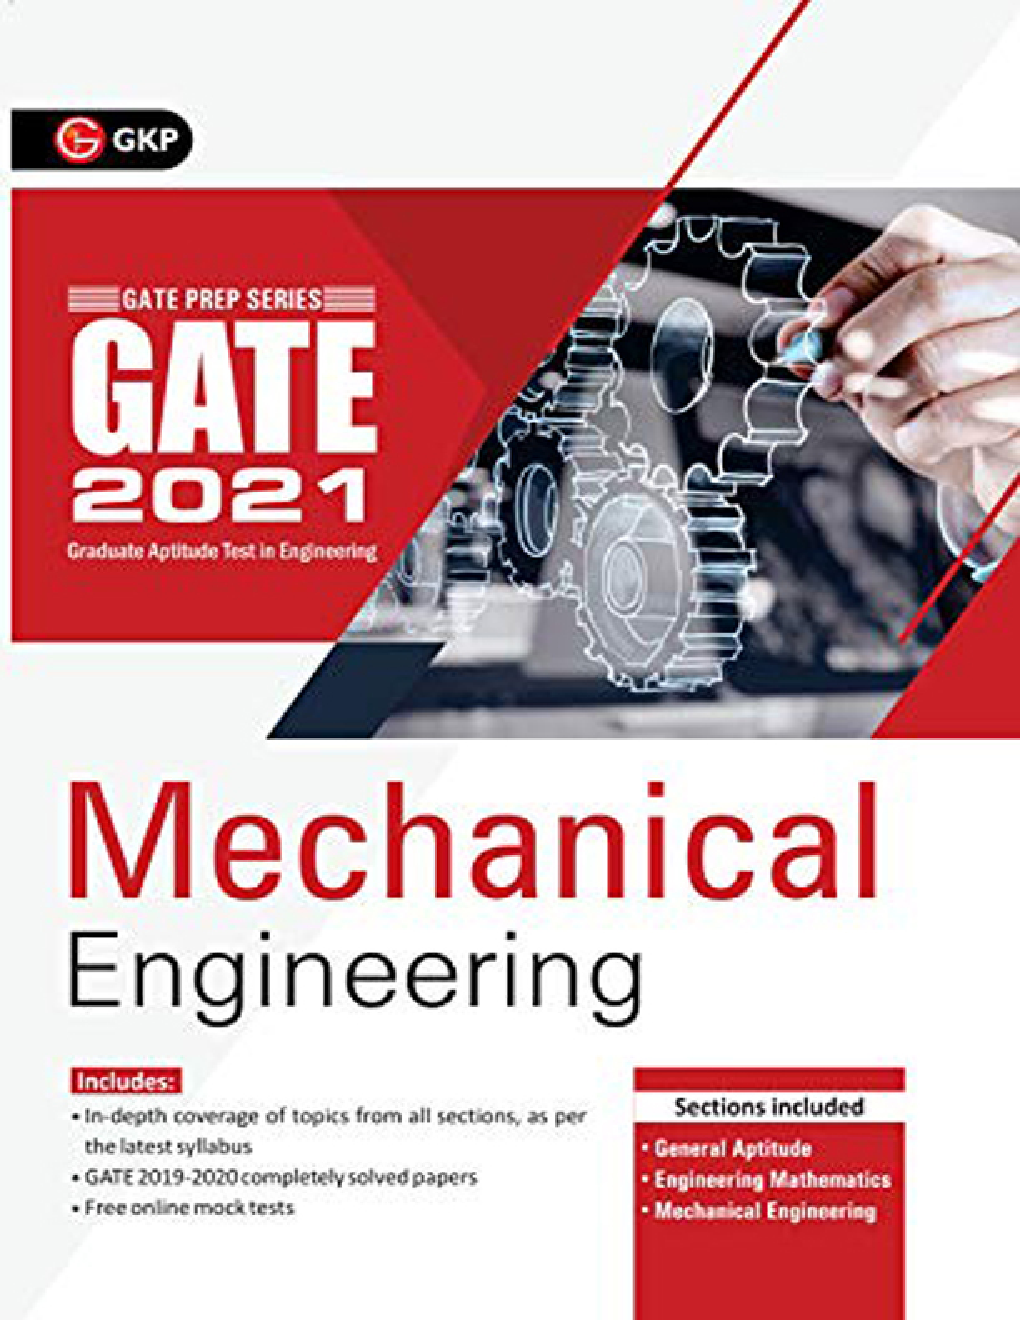 GATE 2021 Mechanical Engineering - Guide - Page 1